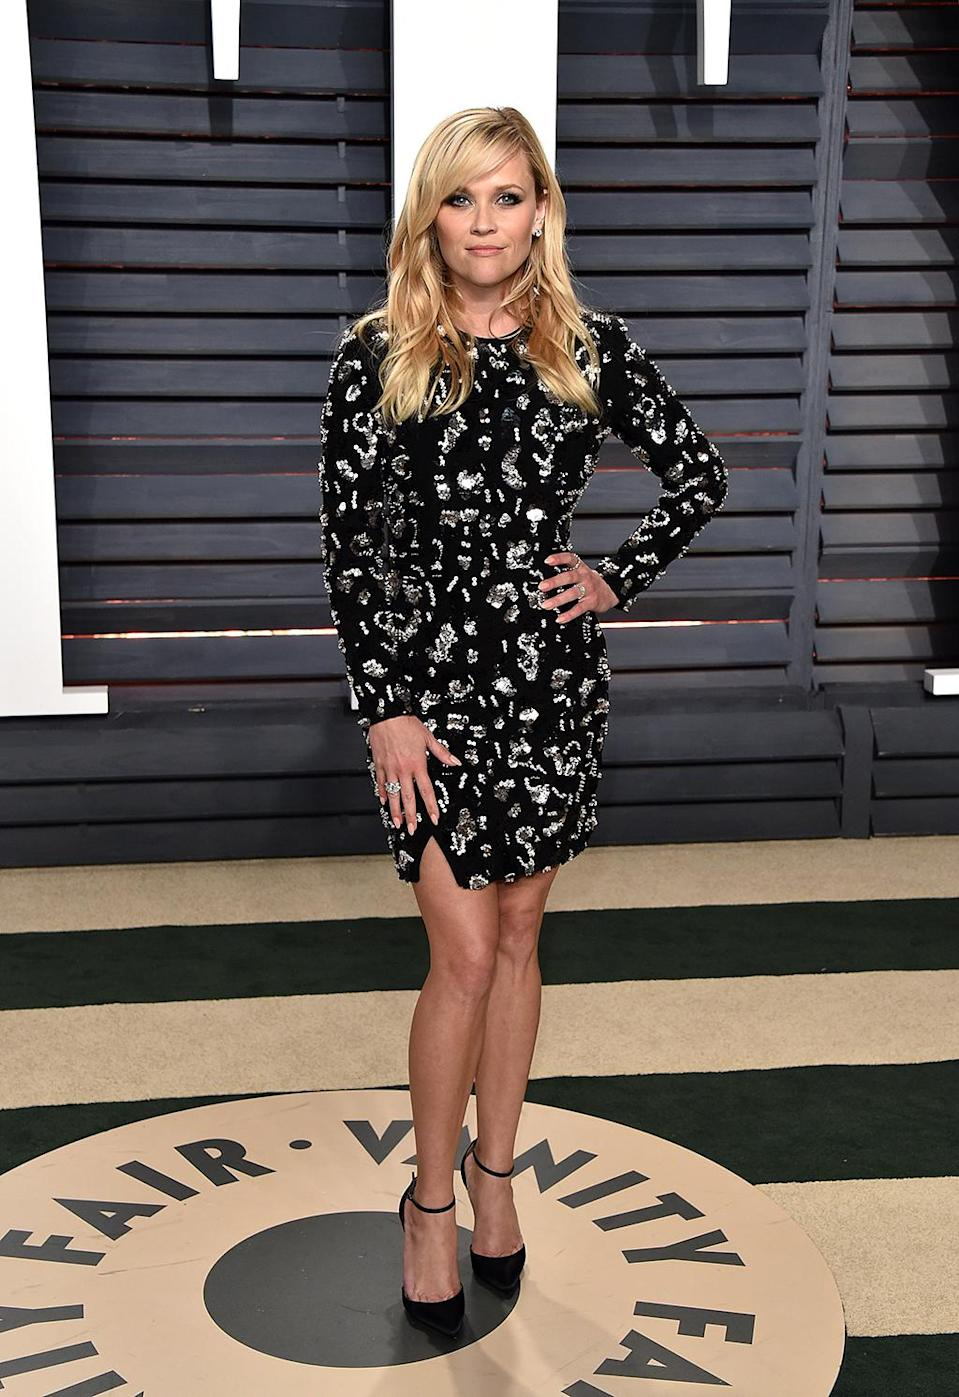 <p>Reese Witherspoon attends the 2017 Vanity Fair Oscar Party hosted by Graydon Carter at Wallis Annenberg Center for the Performing Arts on February 26, 2017 in Beverly Hills, California. (Photo by John Shearer/Getty Images) </p>